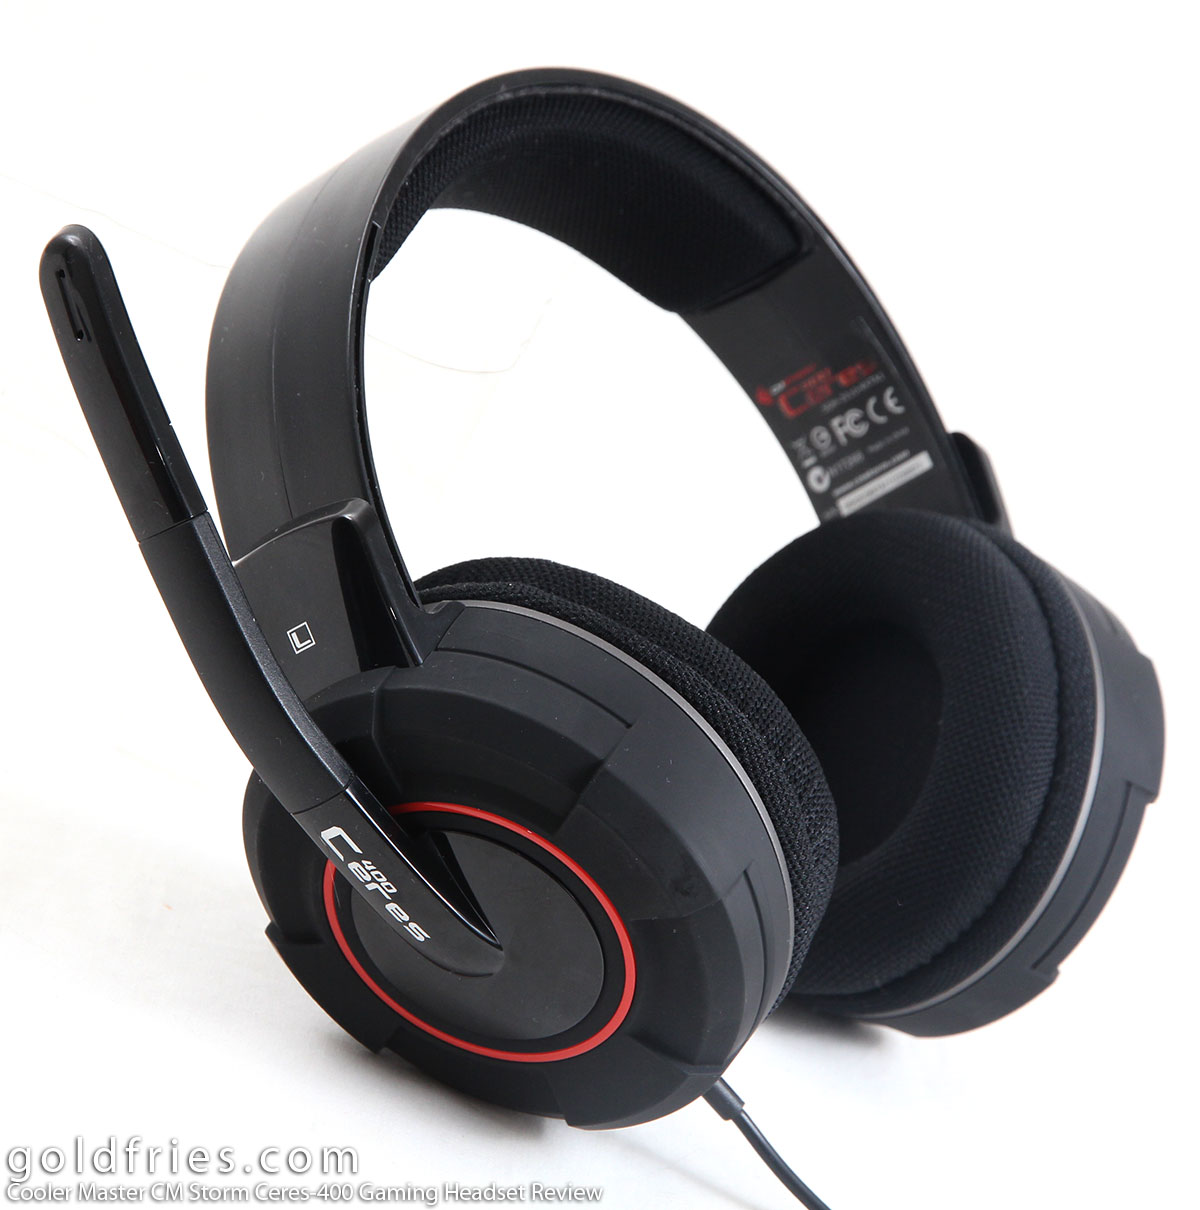 Cooler Master CM Storm Ceres-400 Gaming Headset Review 1